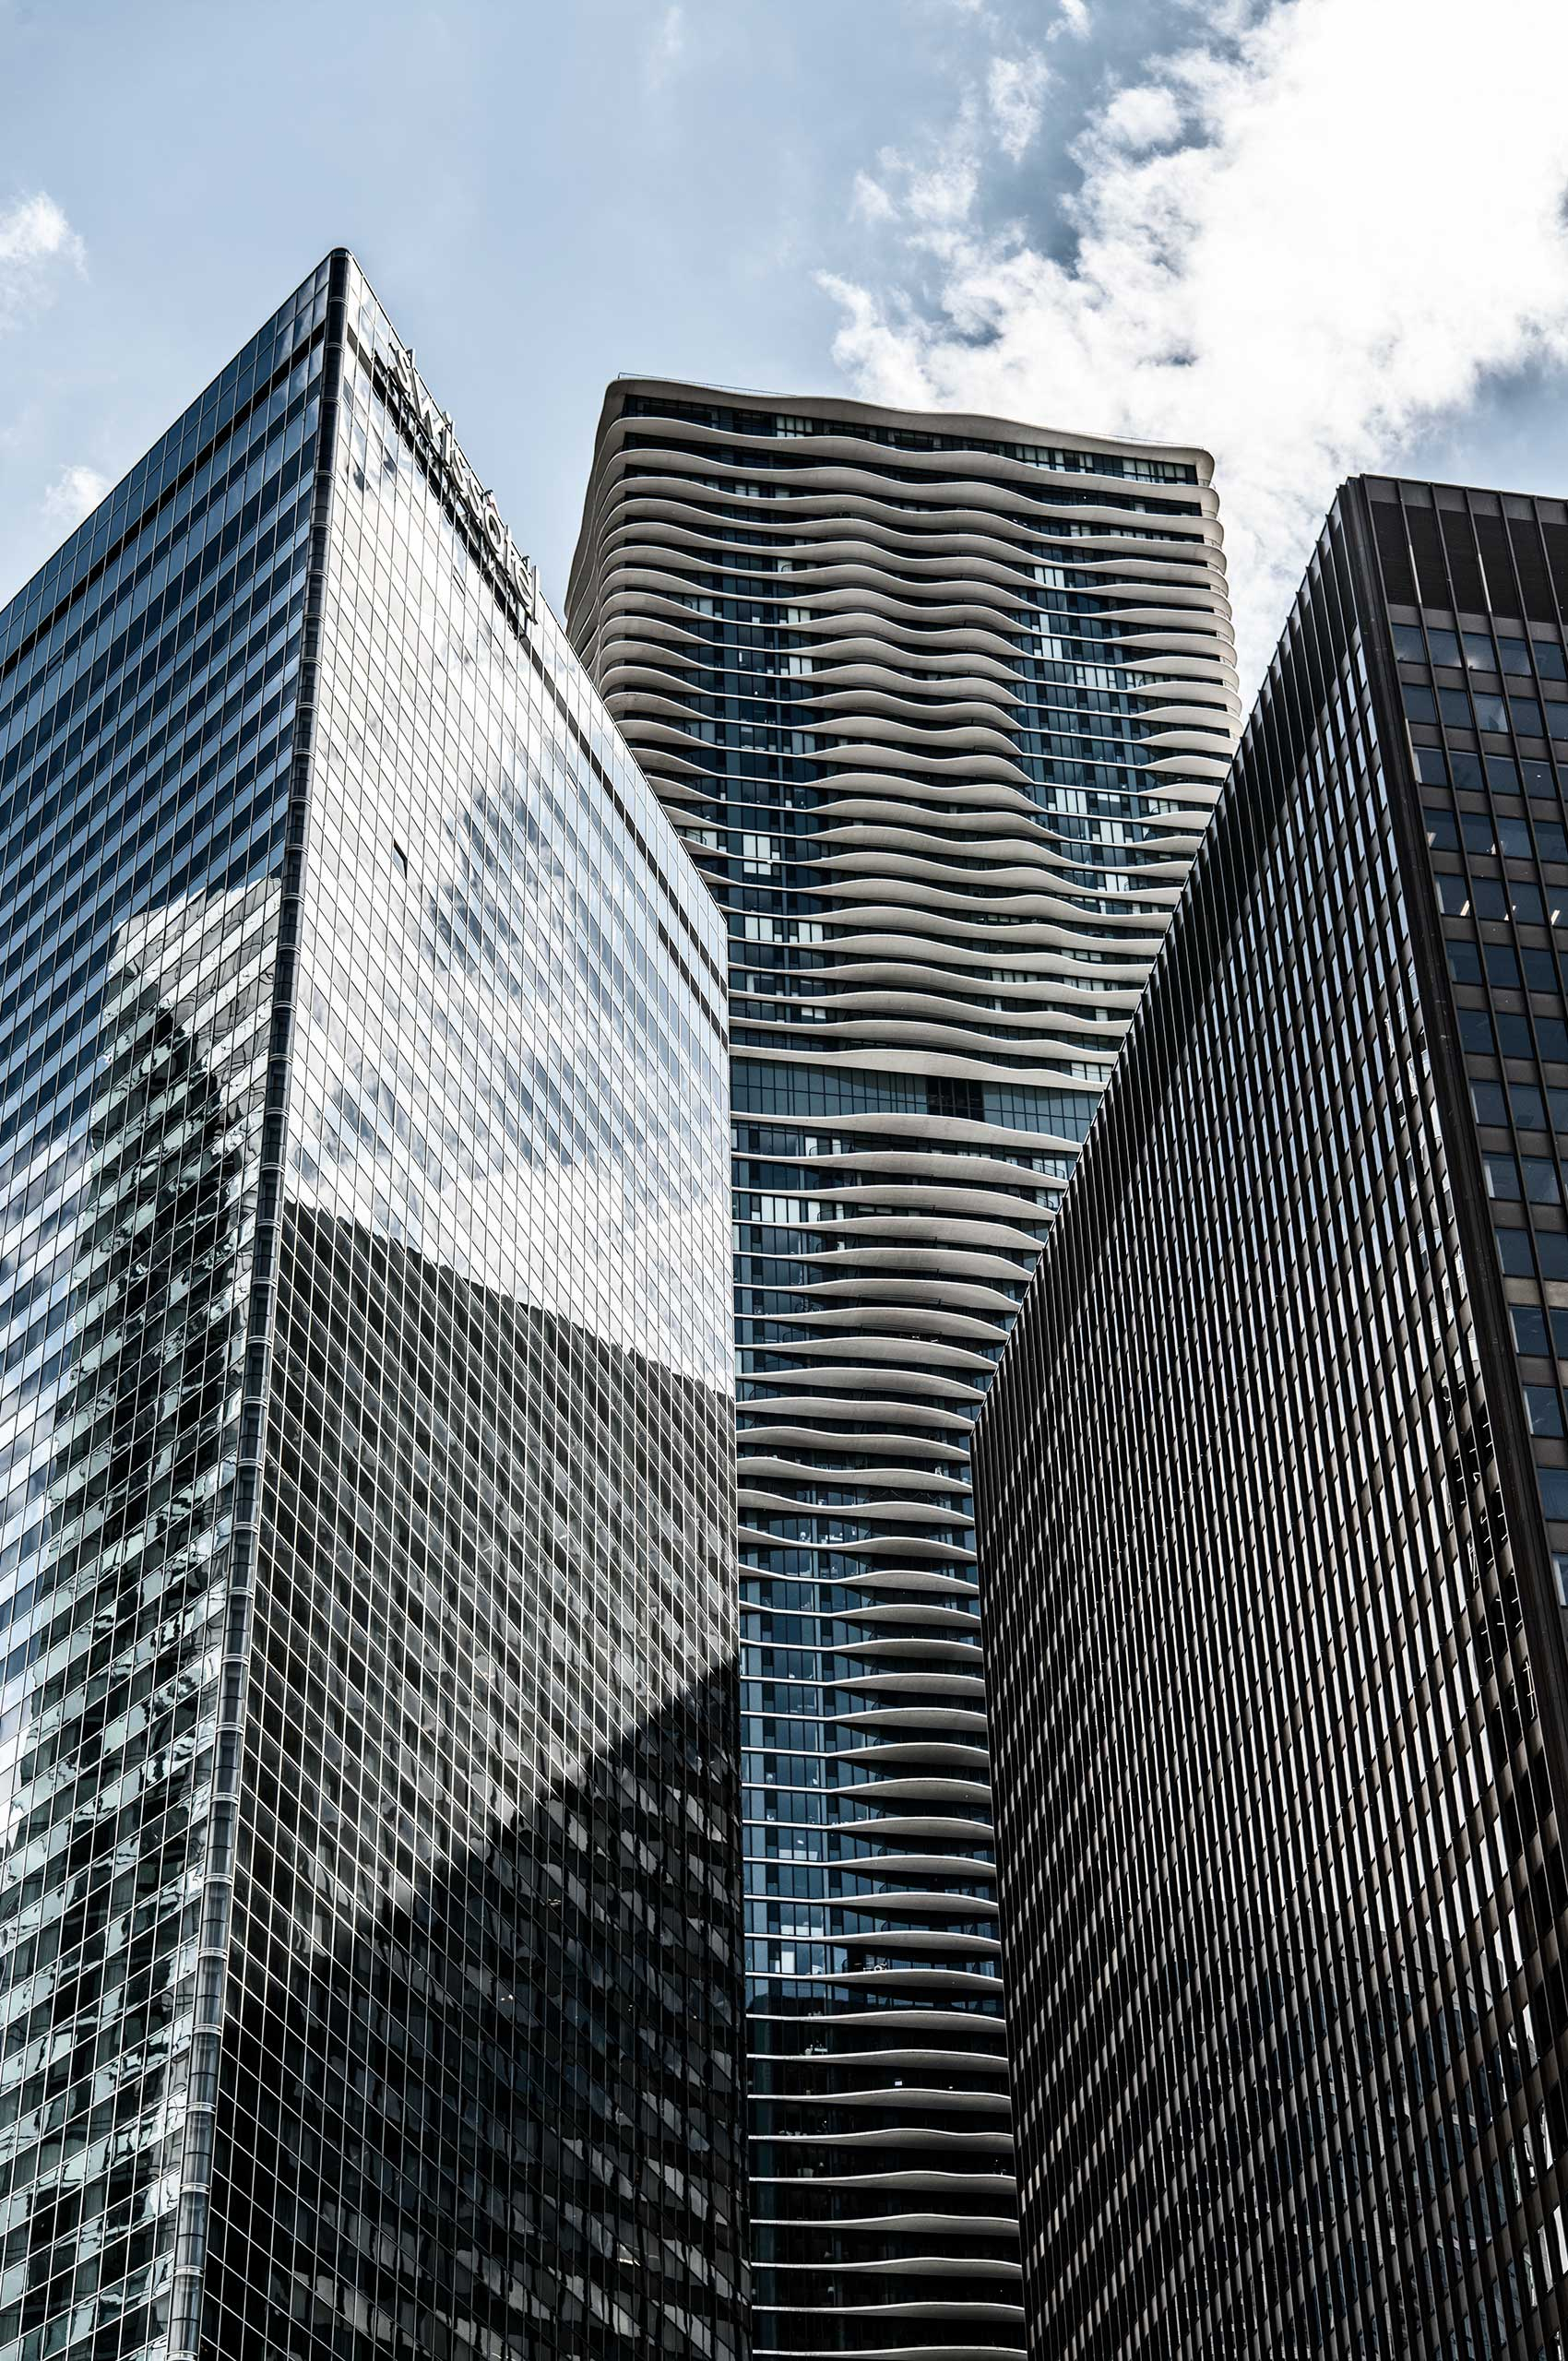 Contemporary-Skyscrapers-Chicago-HenrikOlundPhotography.jpg